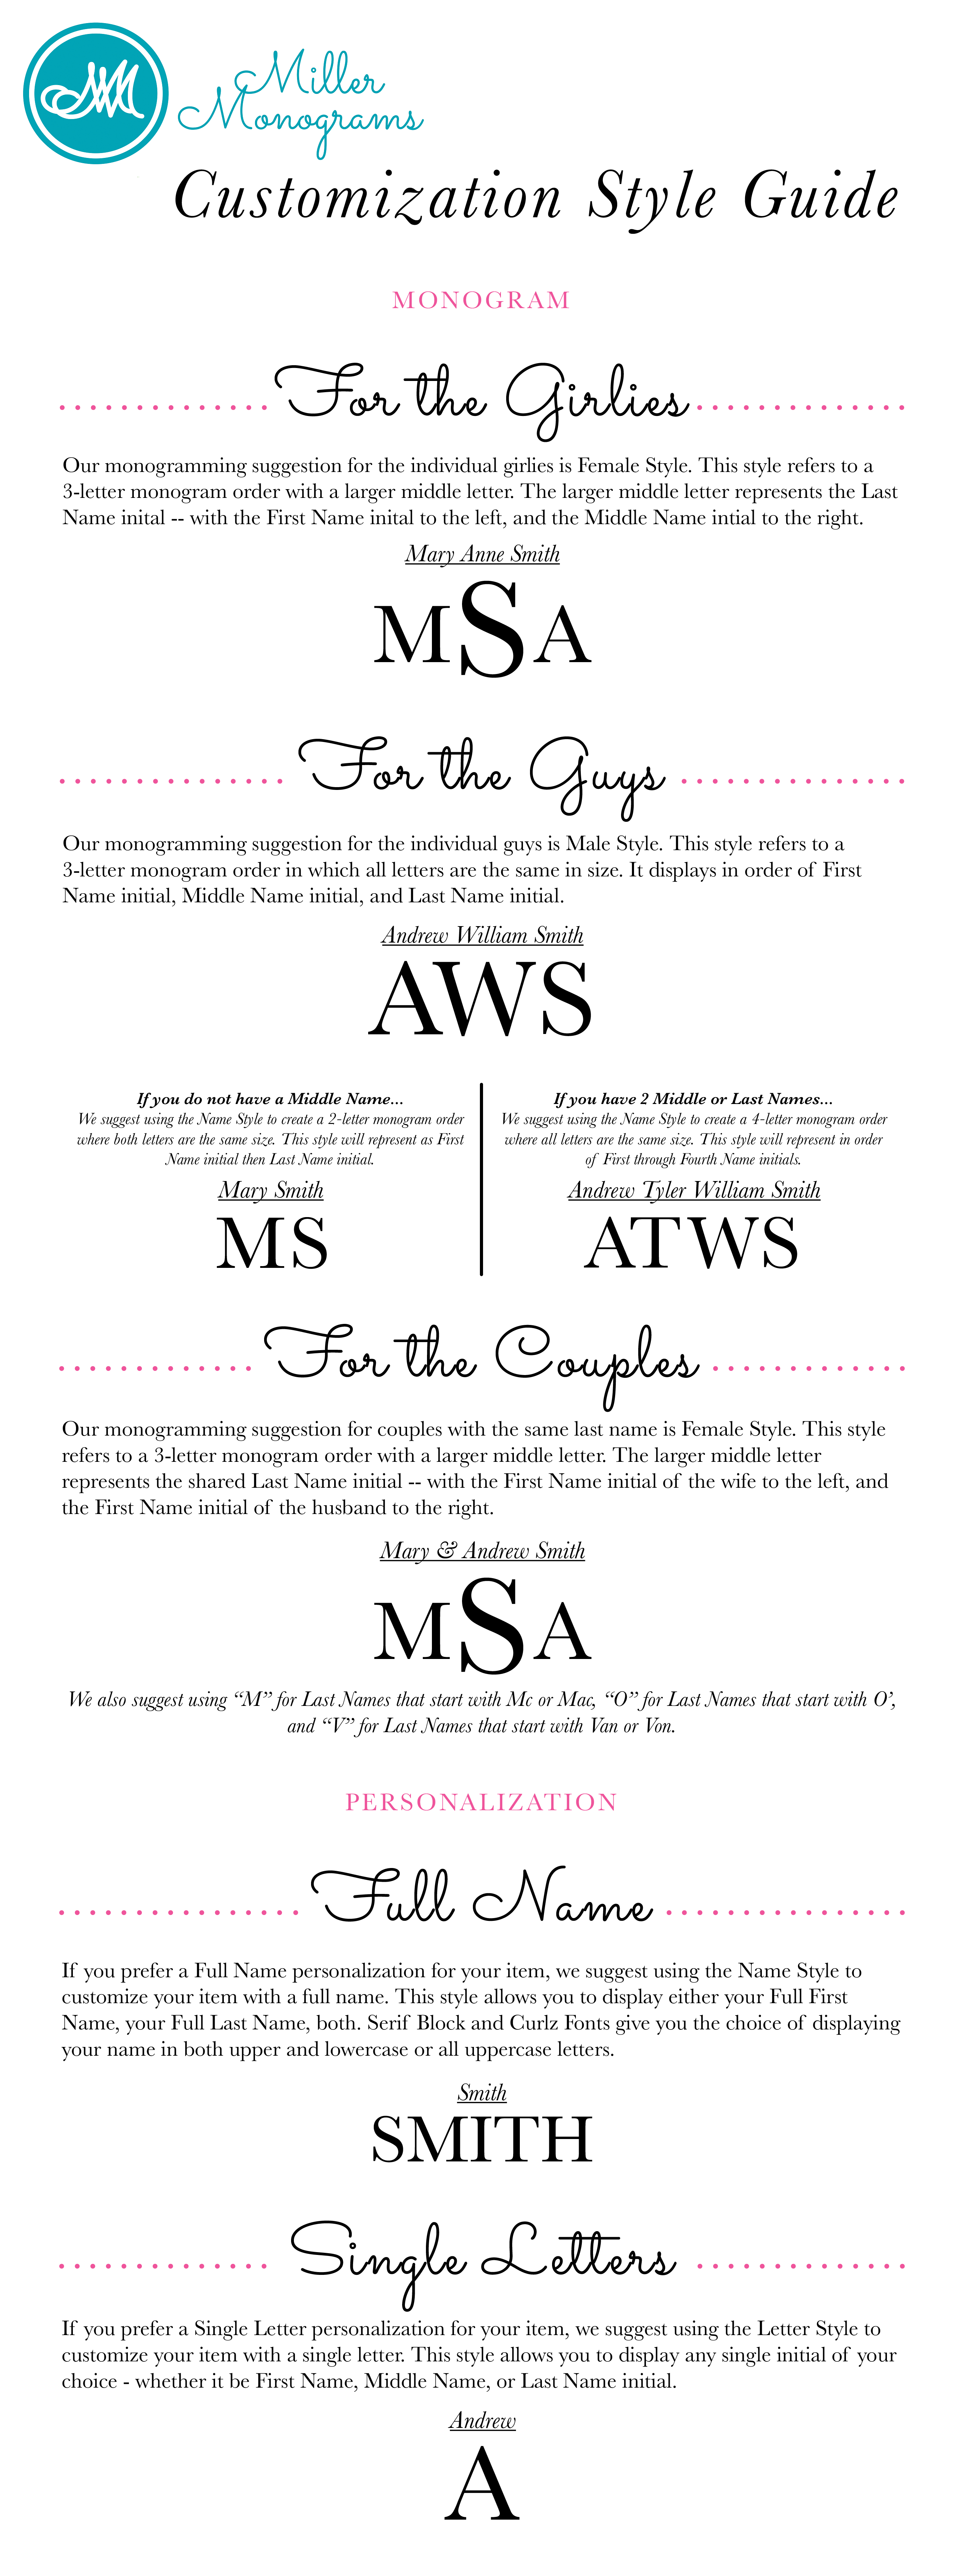 style-guide-full-page.png